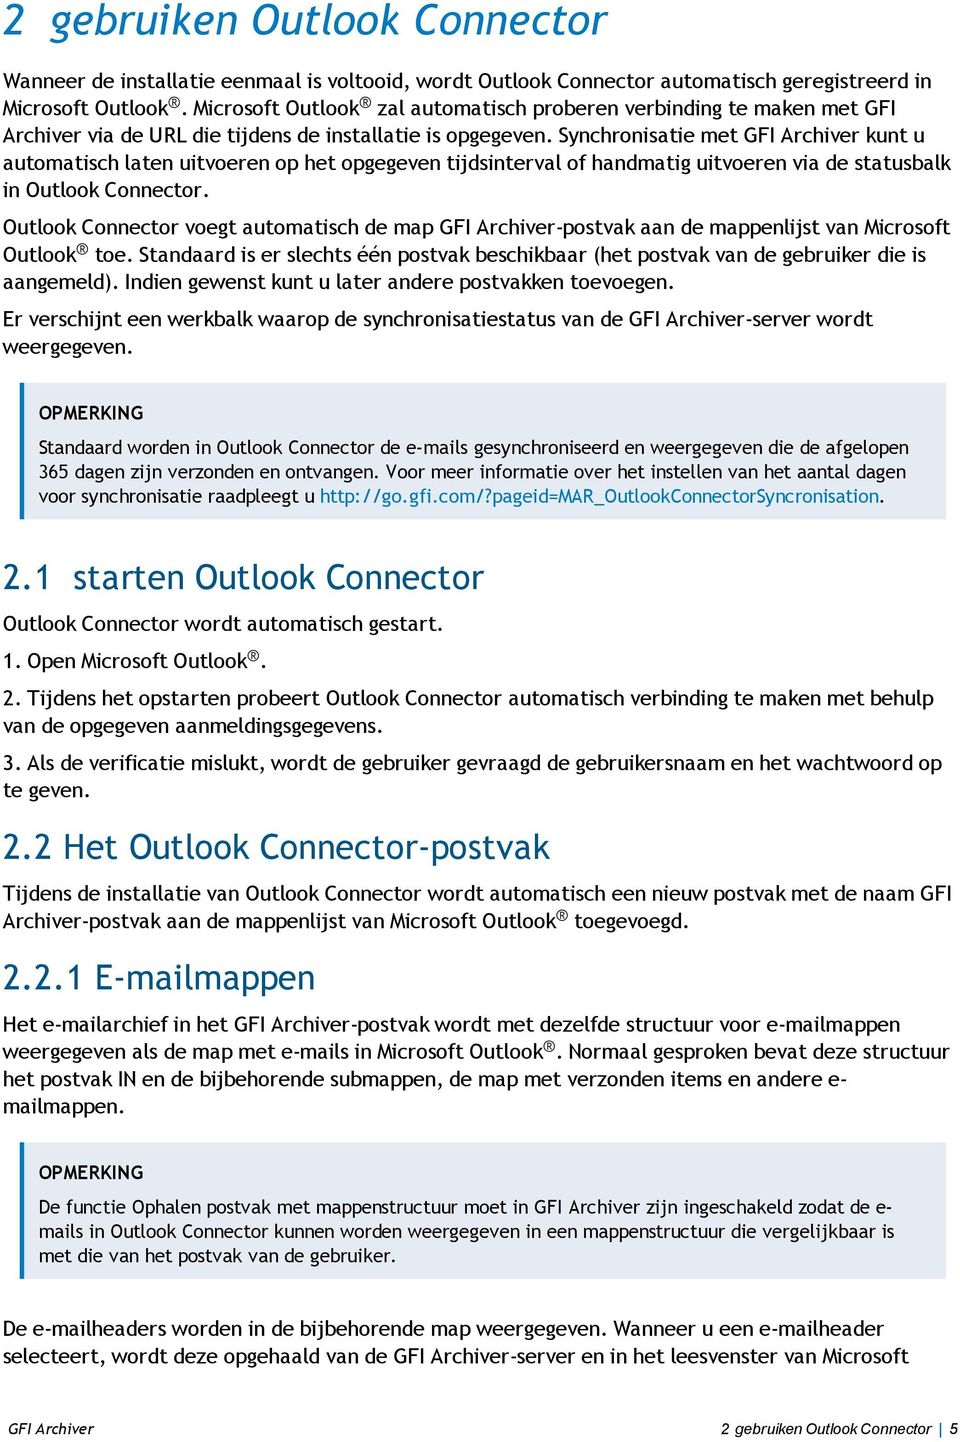 Synchronisatie met GFI Archiver kunt u automatisch laten uitvoeren op het opgegeven tijdsinterval of handmatig uitvoeren via de statusbalk in Outlook Connector.